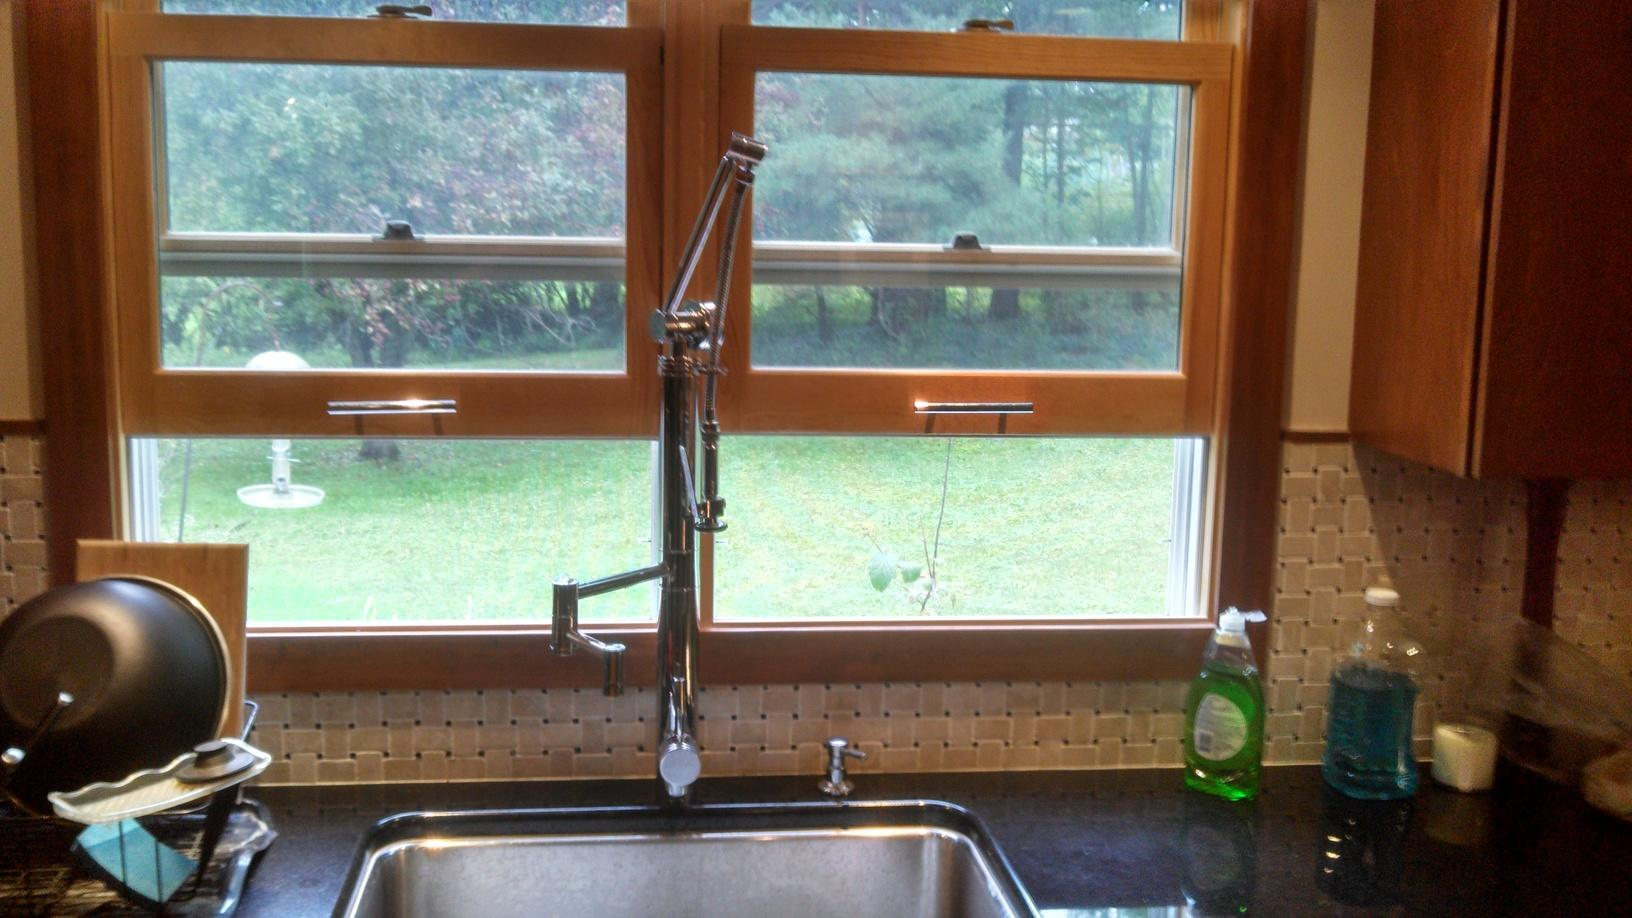 Kitchen Faucet Replacement in Ithaca, NY - After Photo